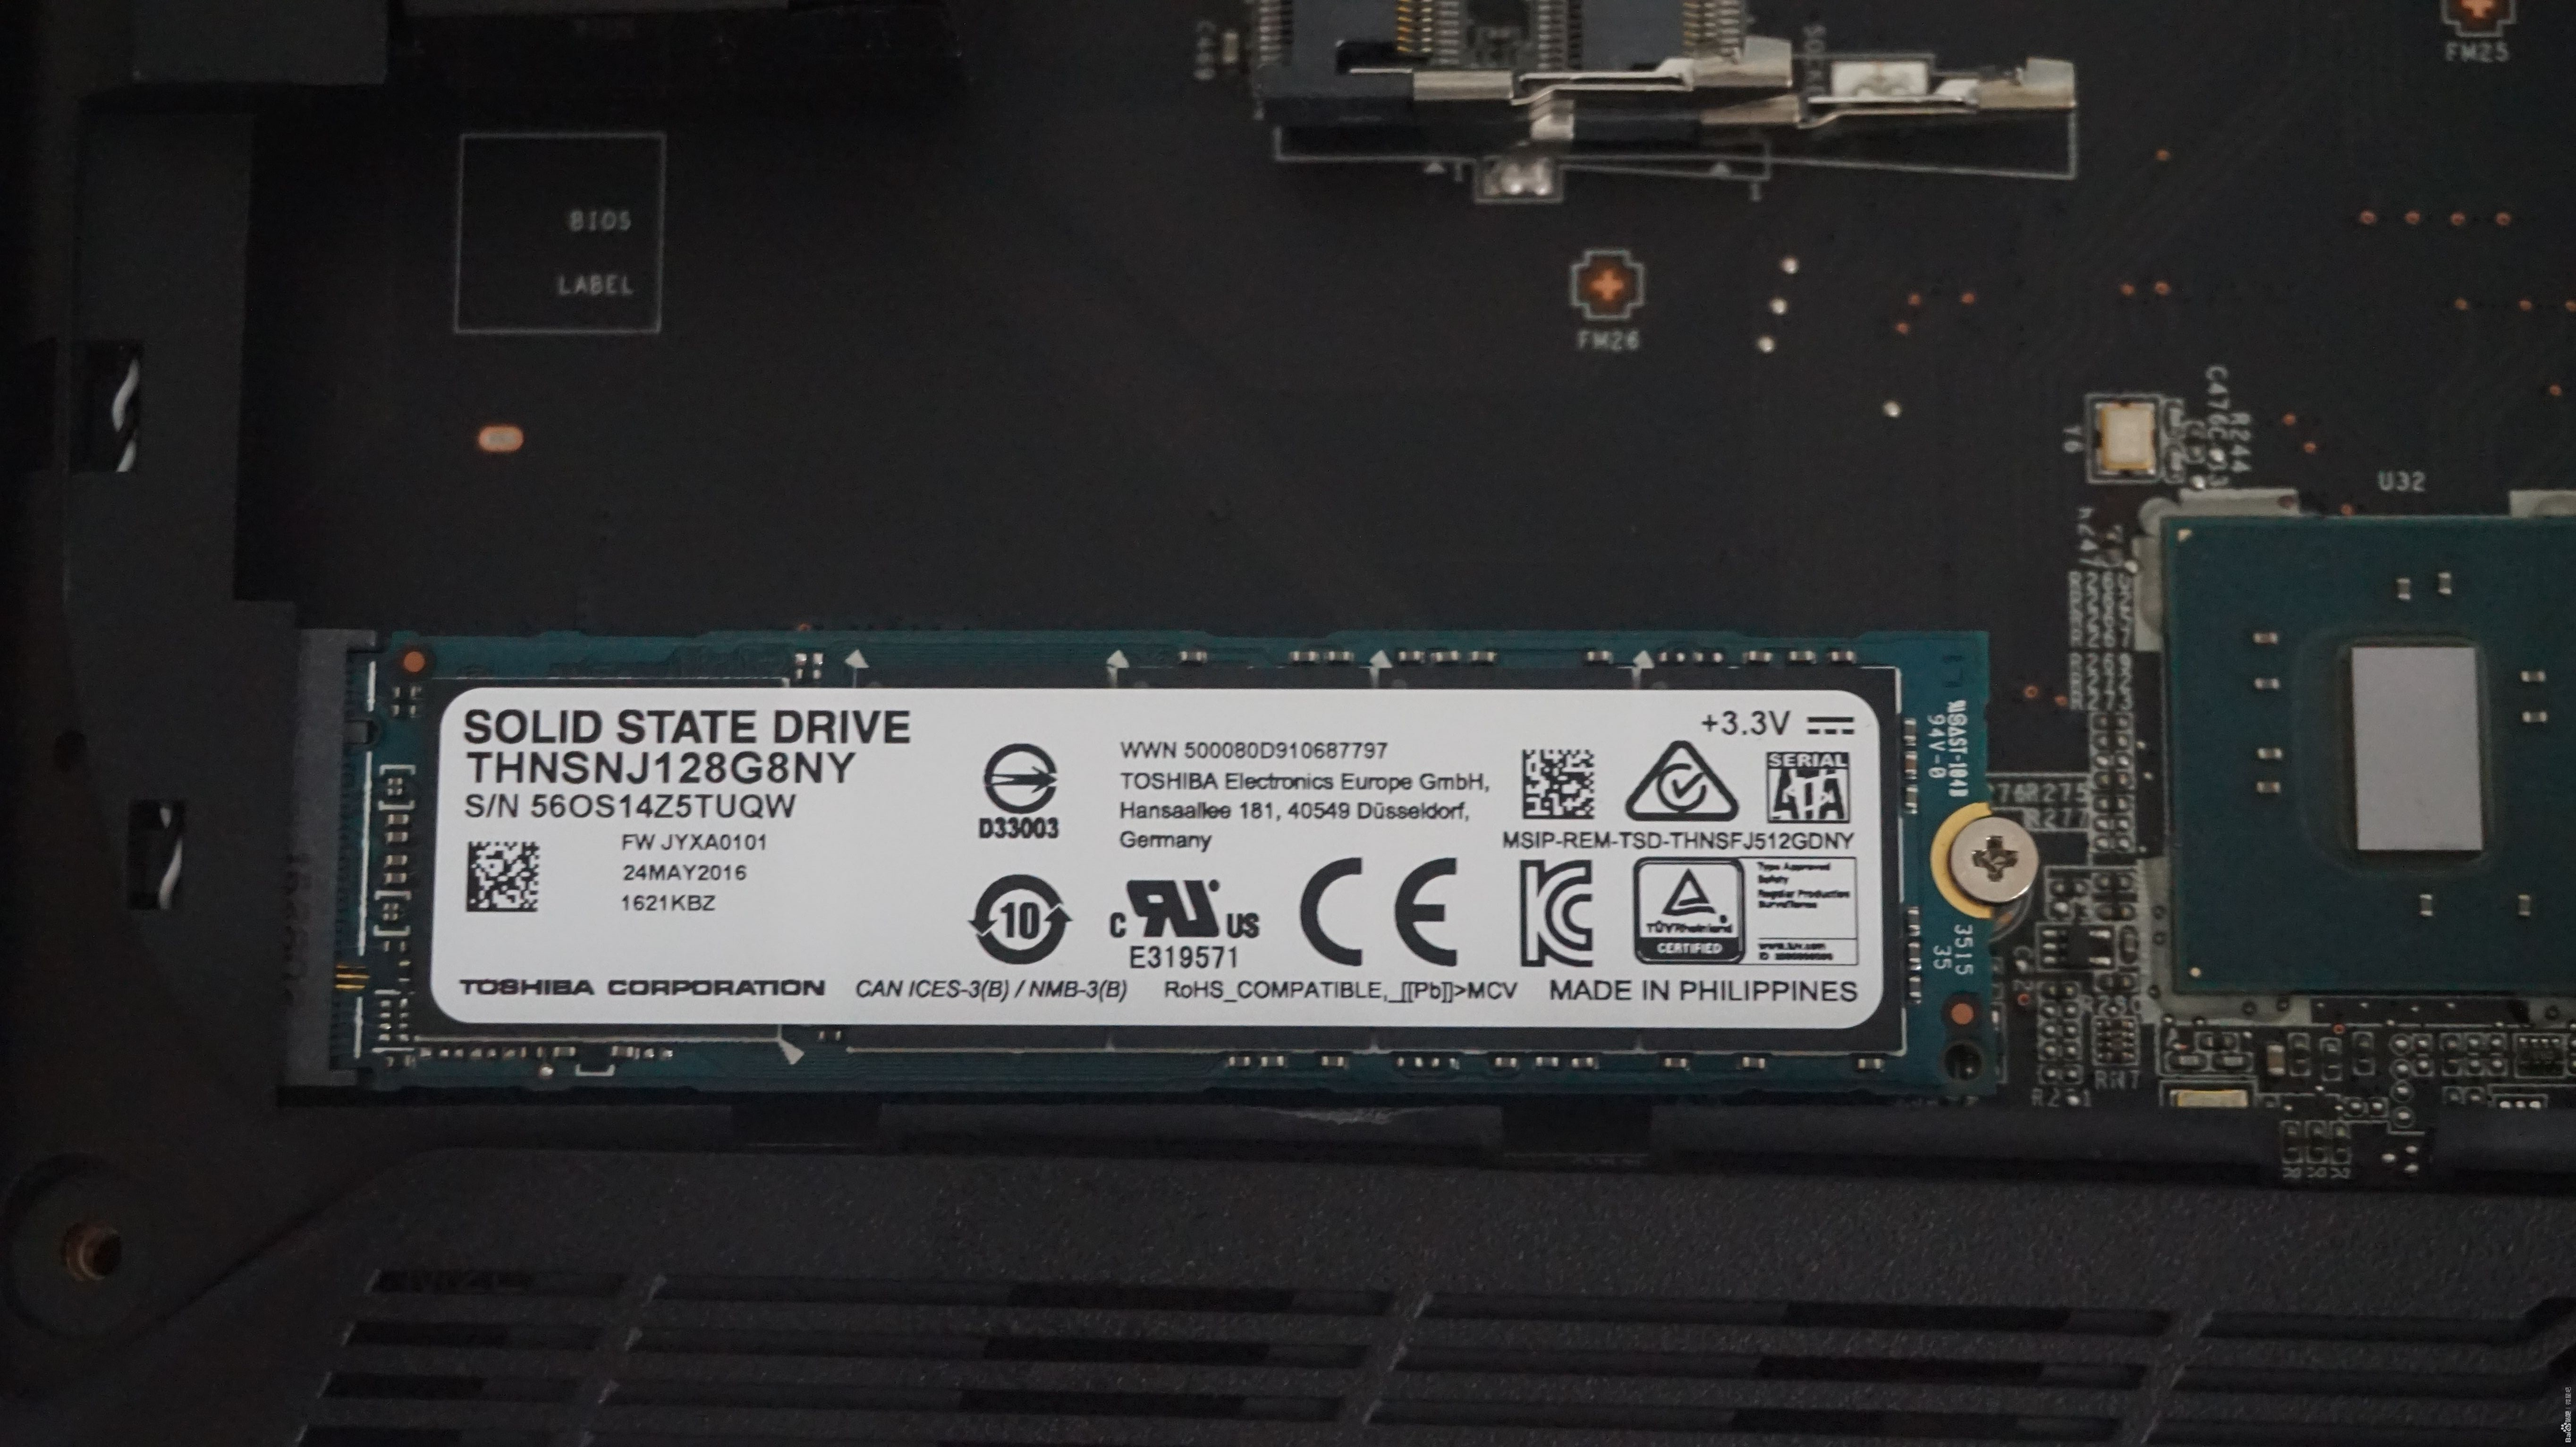 MSI GT62VR Disassembly and RAM, HDD, SSD upgrade guide - Laptopmain com